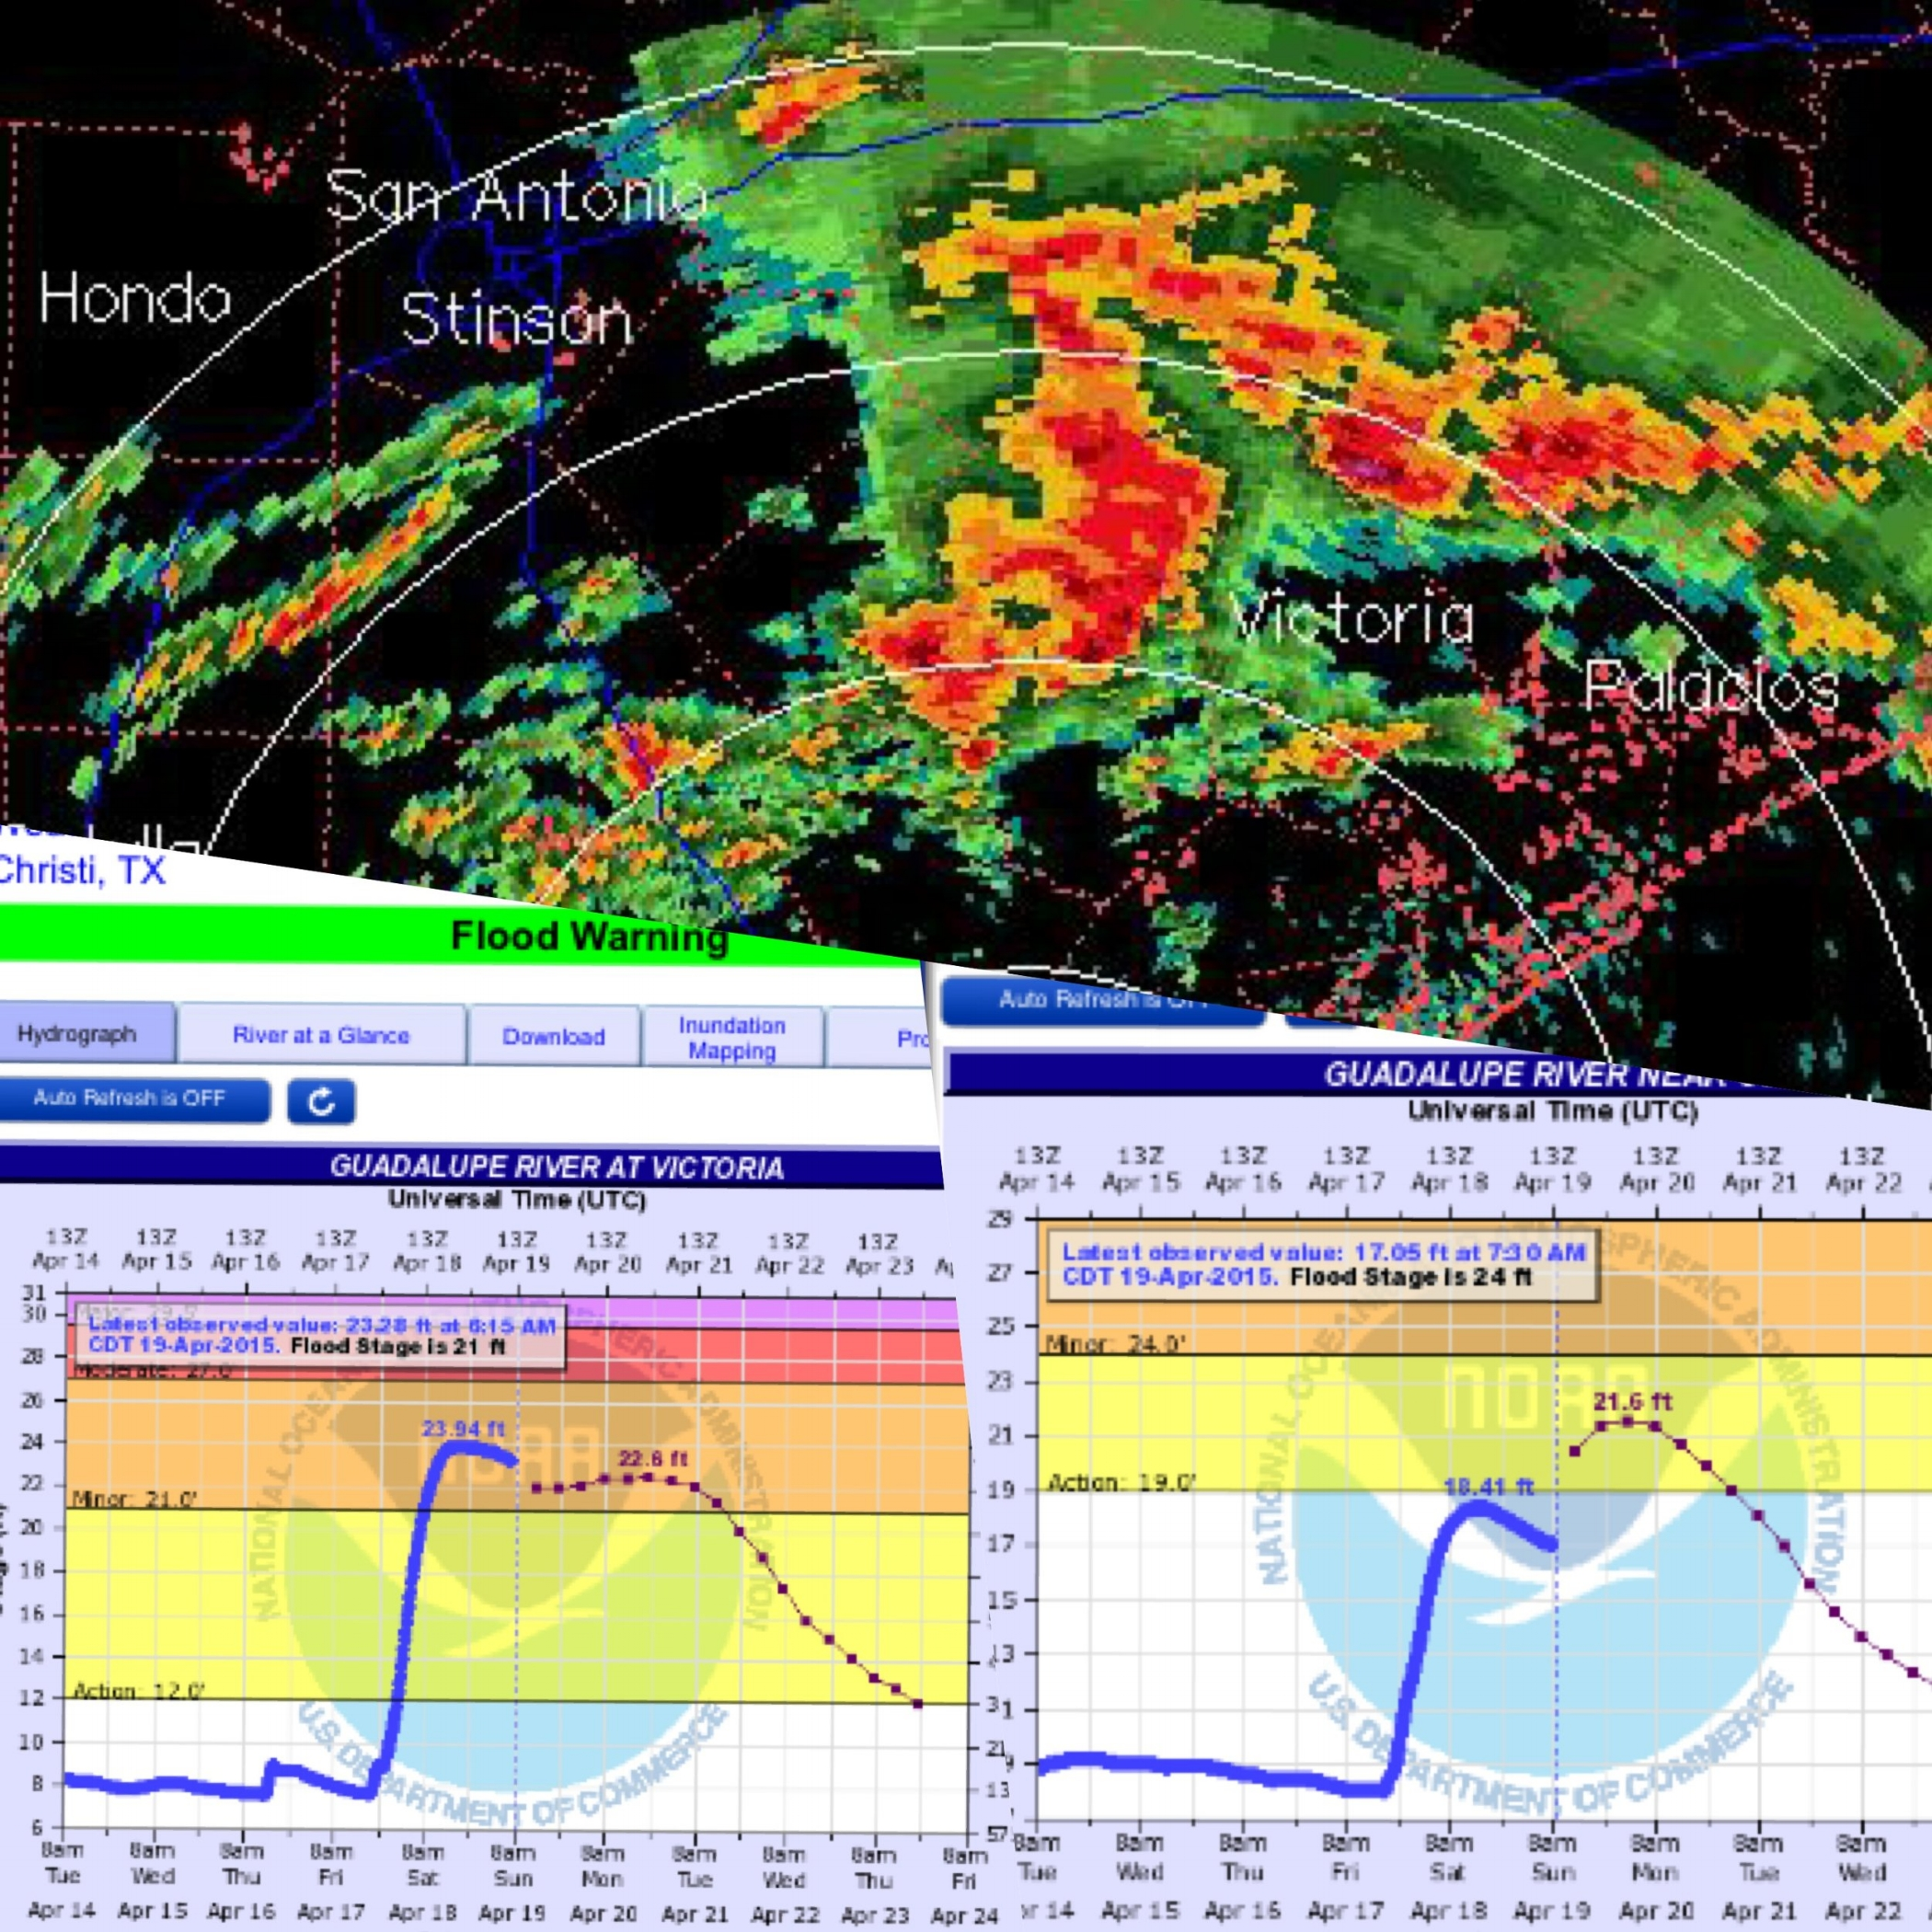 SCREENSHOTS OF FROM RADAR AND RIVER GAUGE CHARTS FROM THE FIRST ROUND OF RAINS ON OUR FIRST NIGHT ON THE RIVER